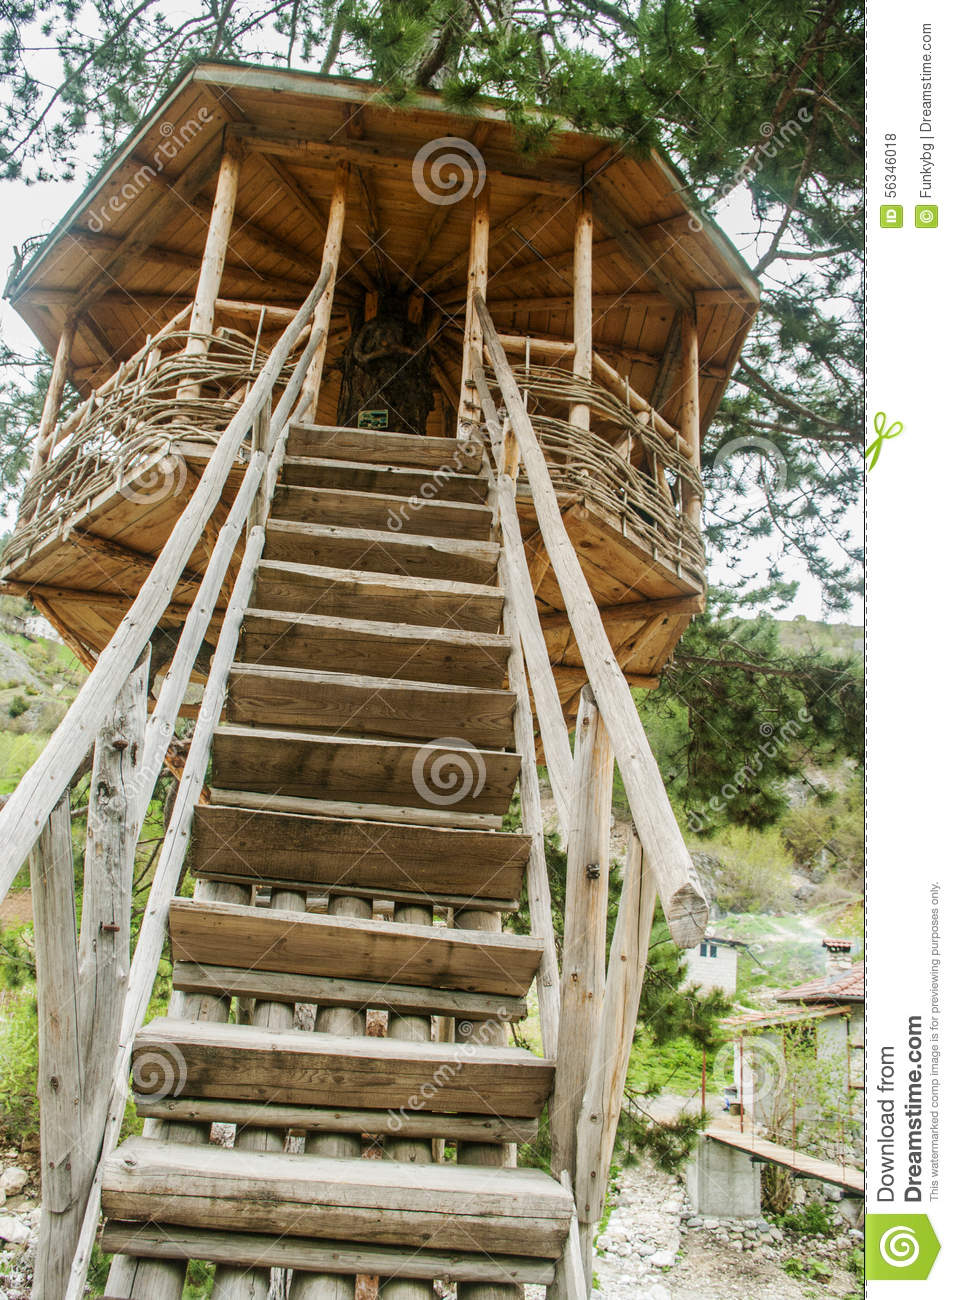 Cute small tree house stock photo image 56346018 for House pics for kids